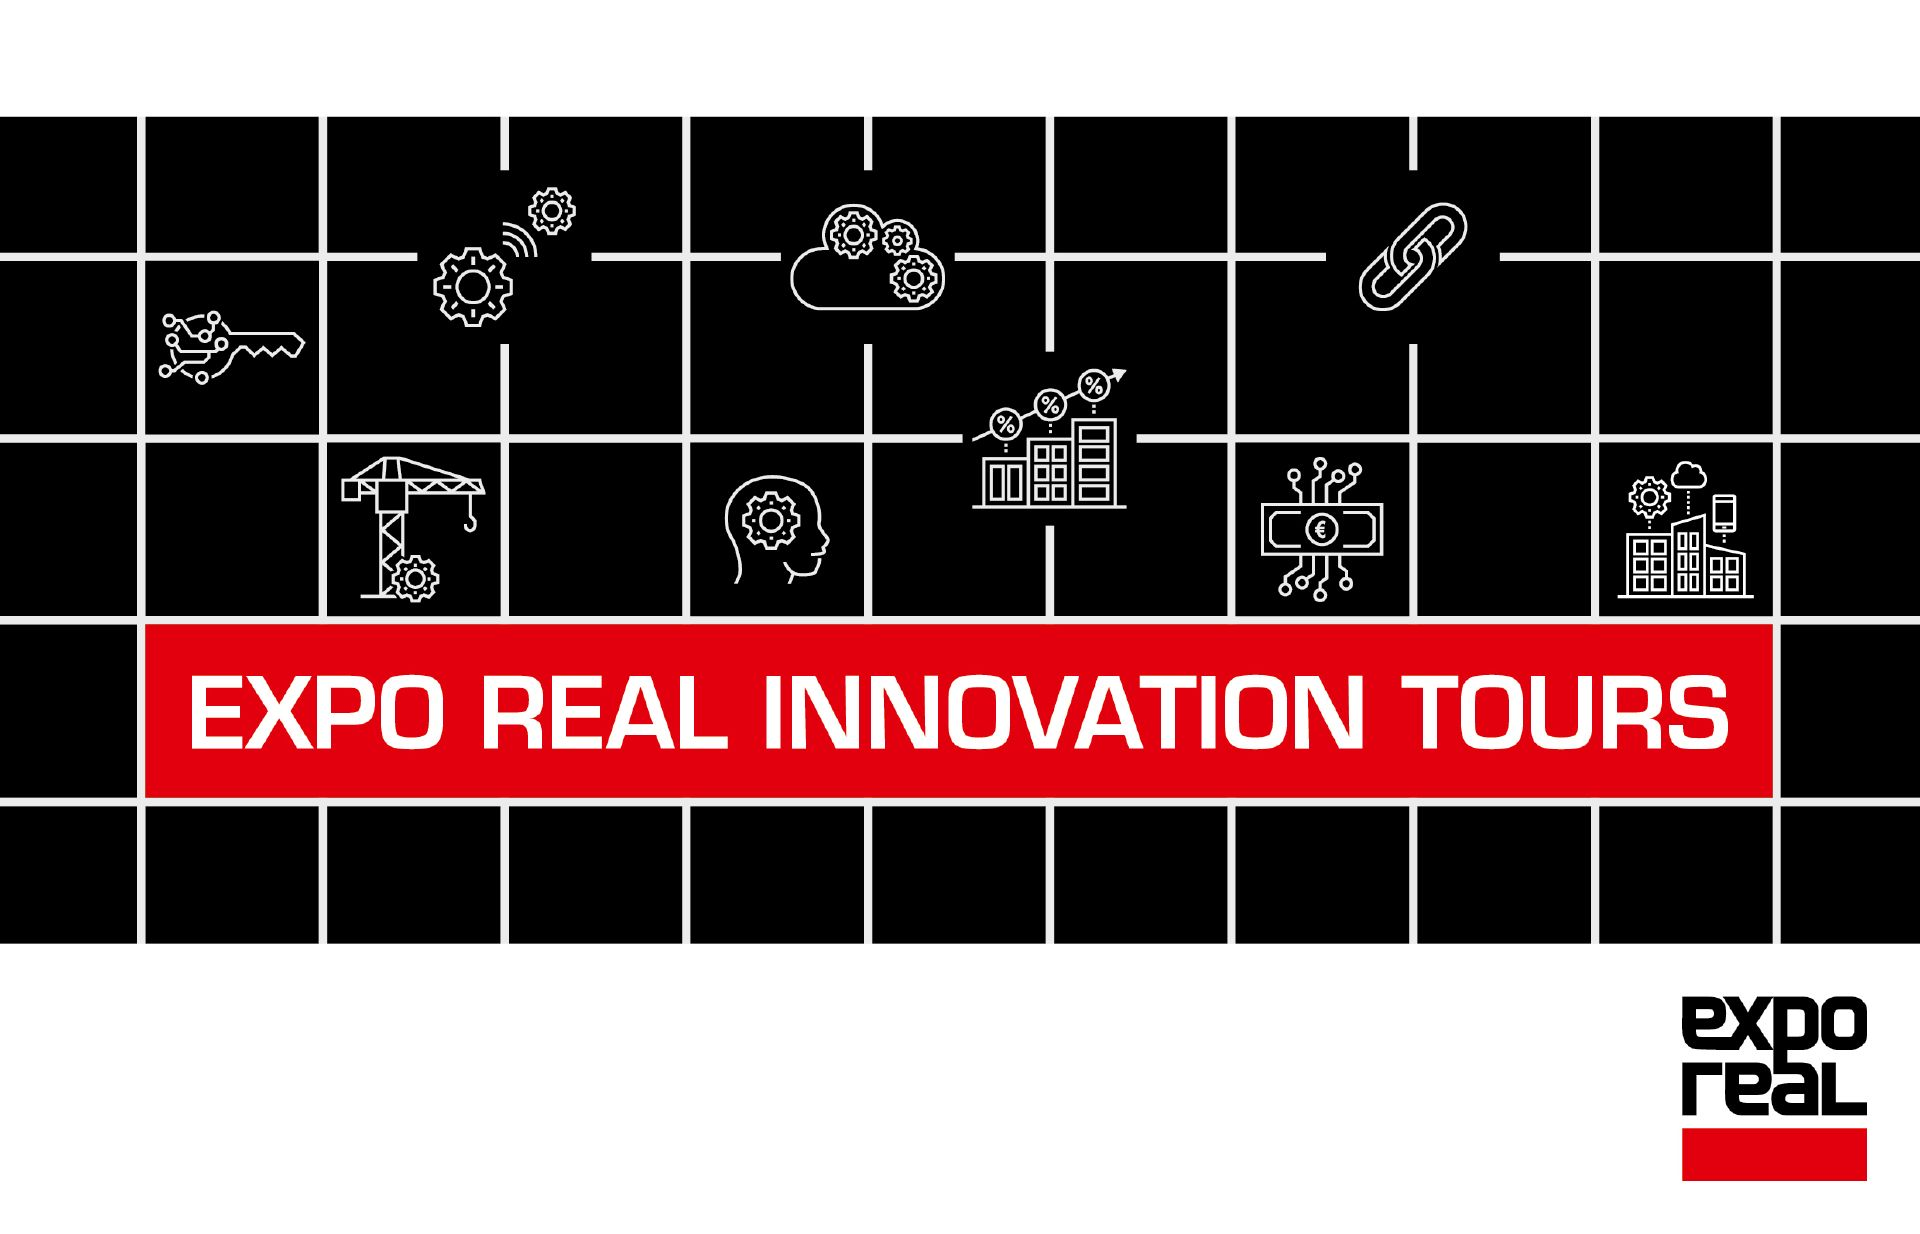 EXPO REAL - Innovation Tours